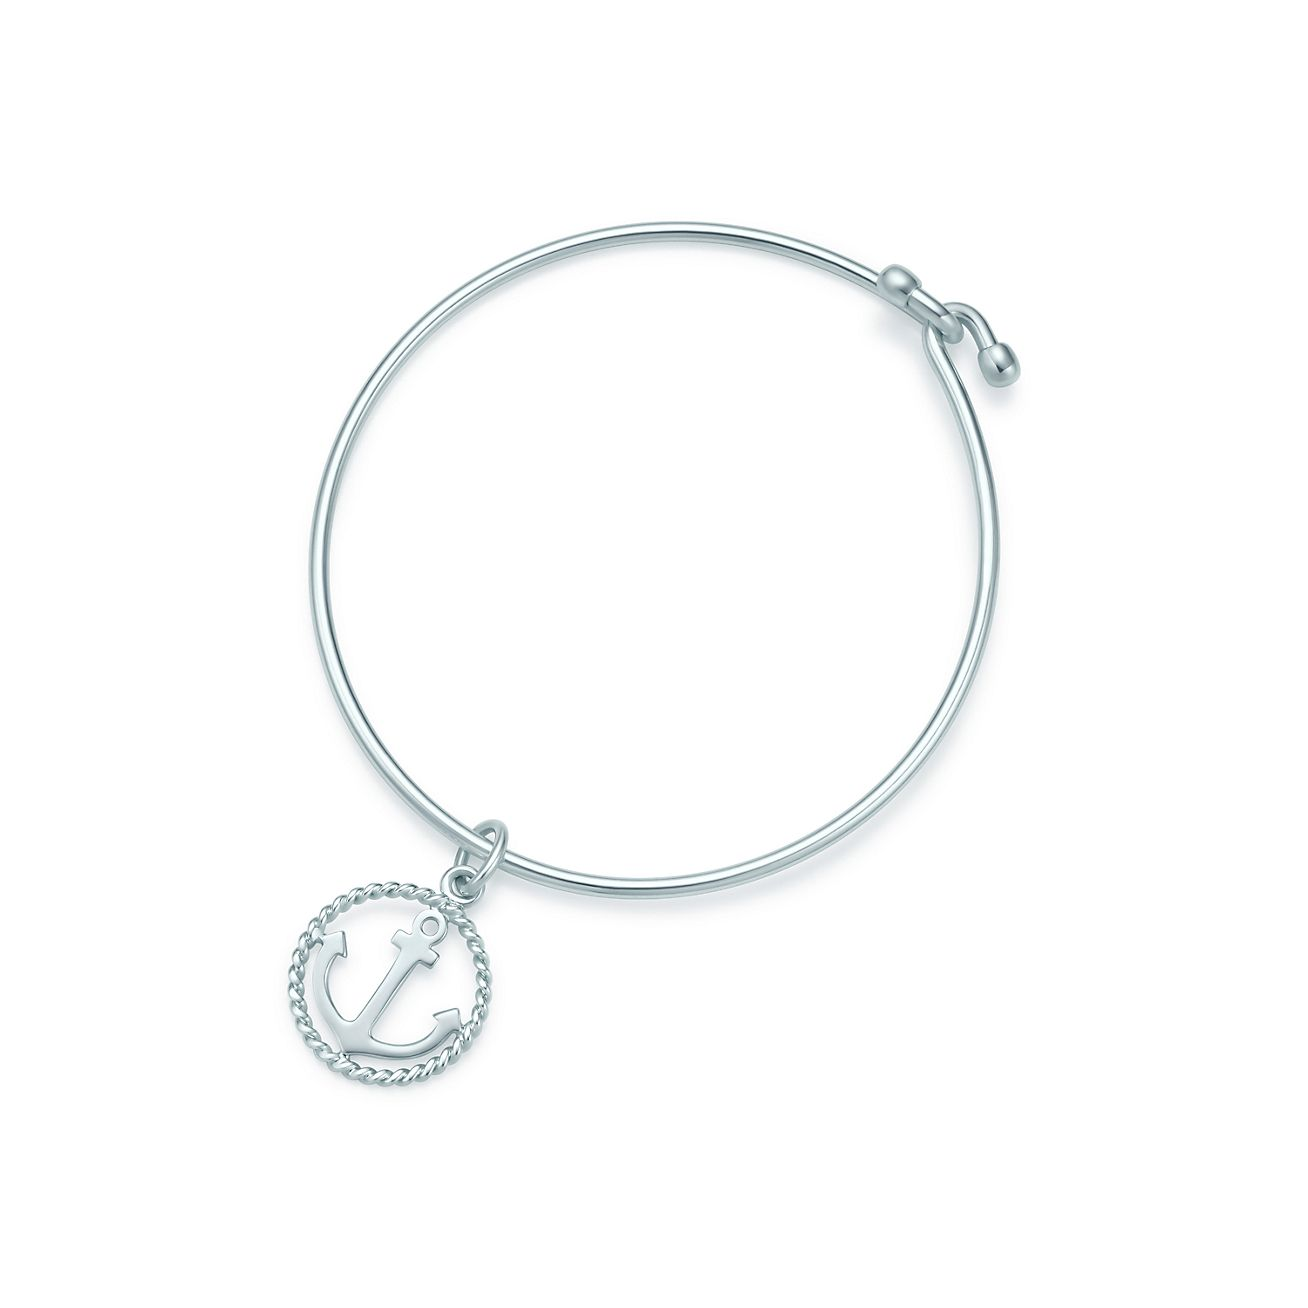 Tiffany Twist Anchor Charm And Bracelet